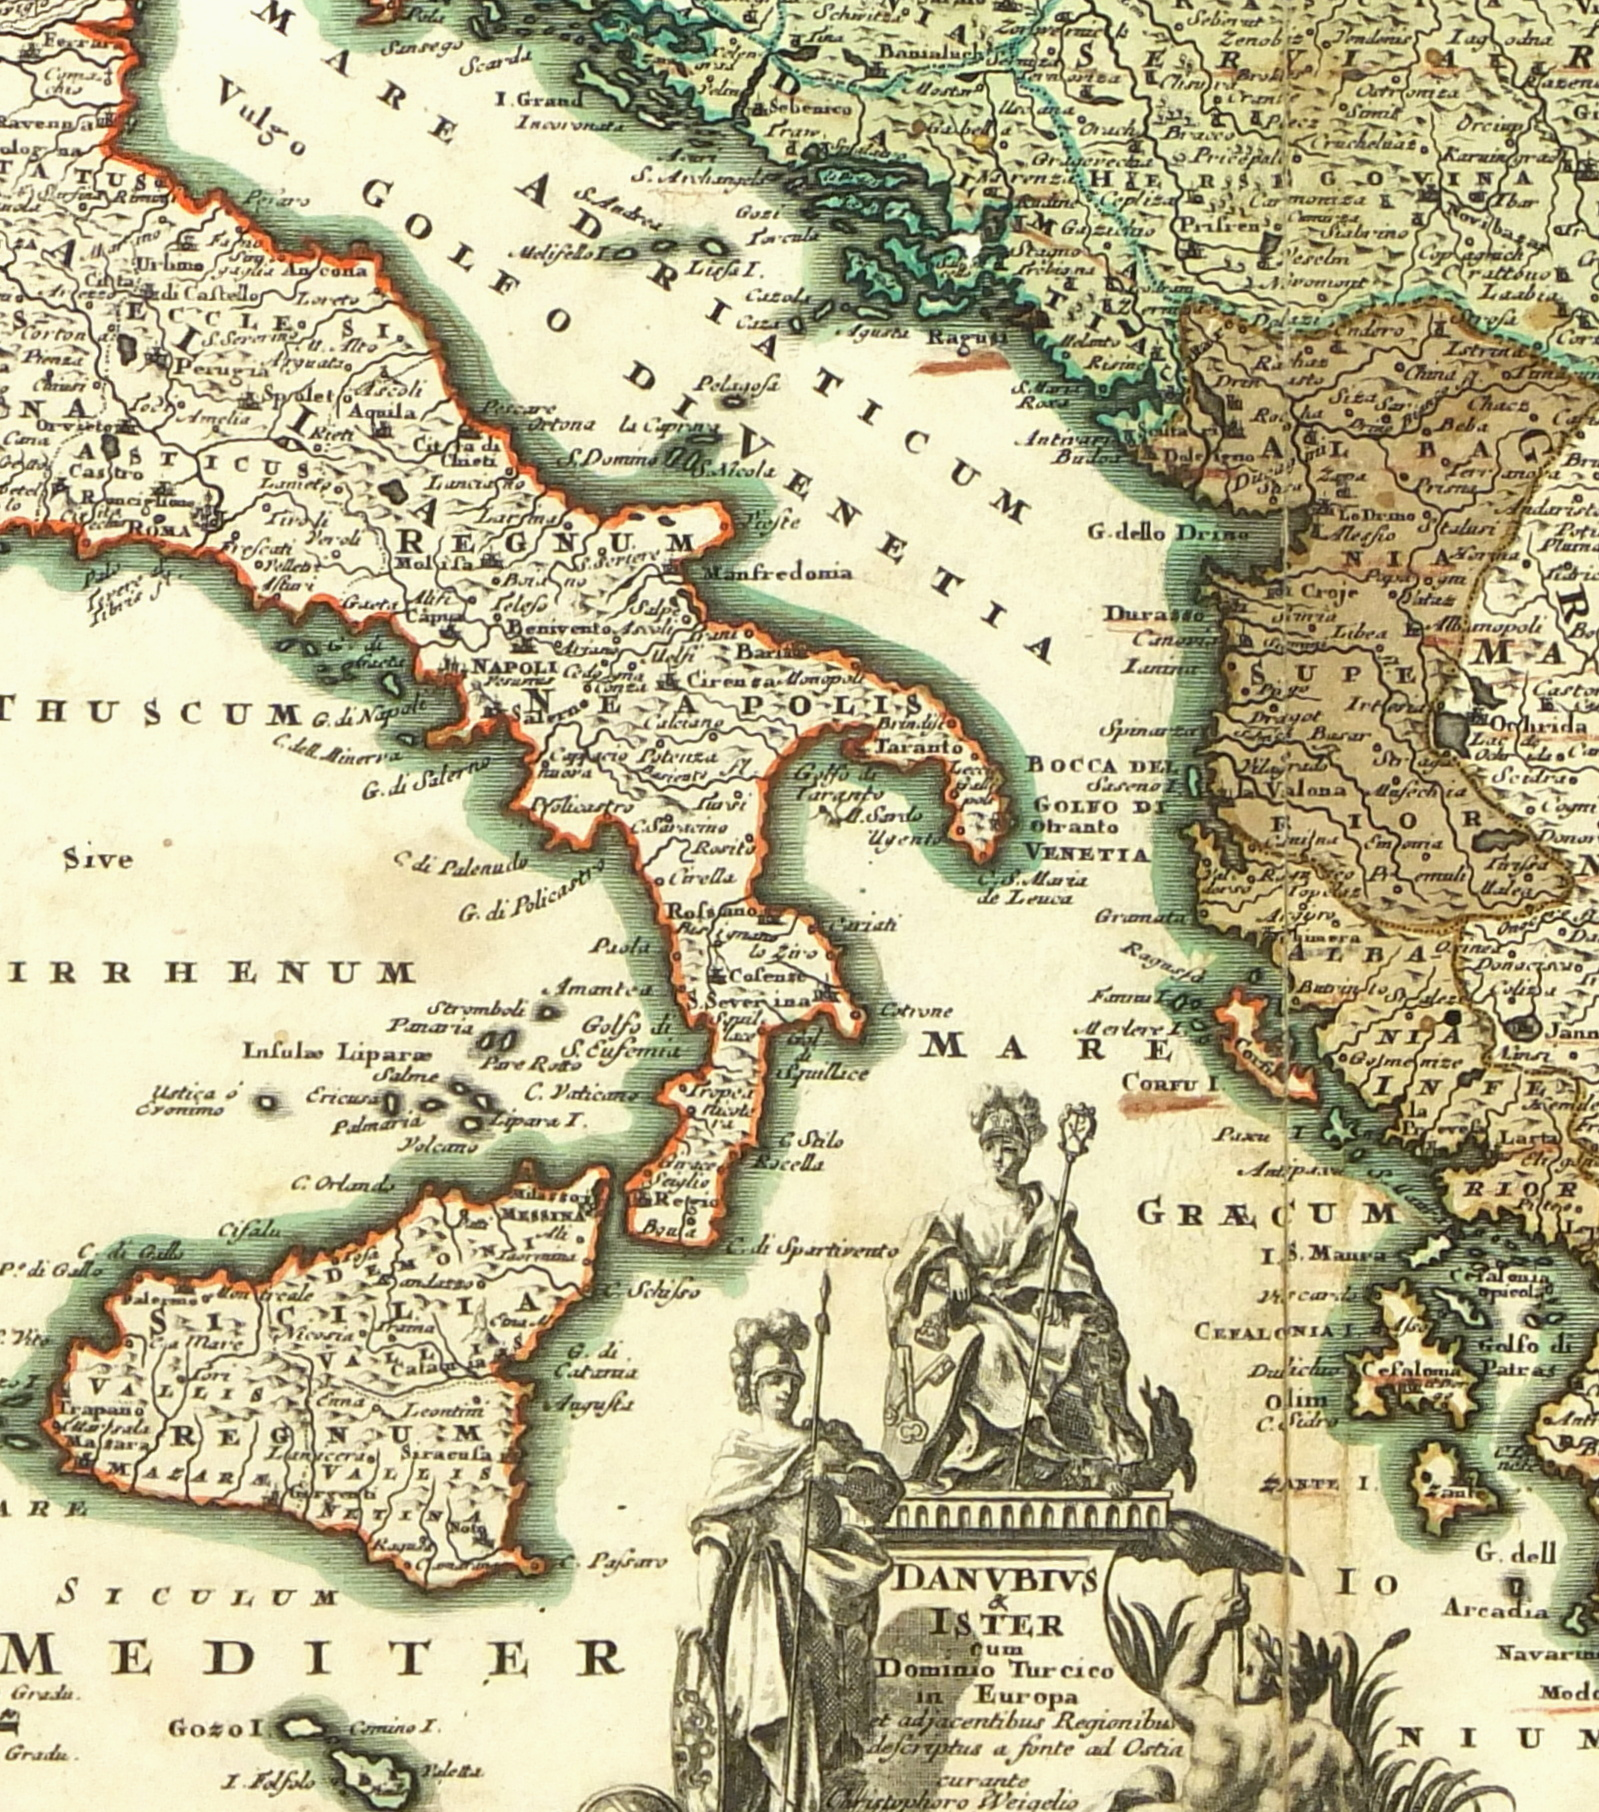 Map of italy to greece 1724 original art antique maps prints map of italy to greece 1724 detail 7269k gumiabroncs